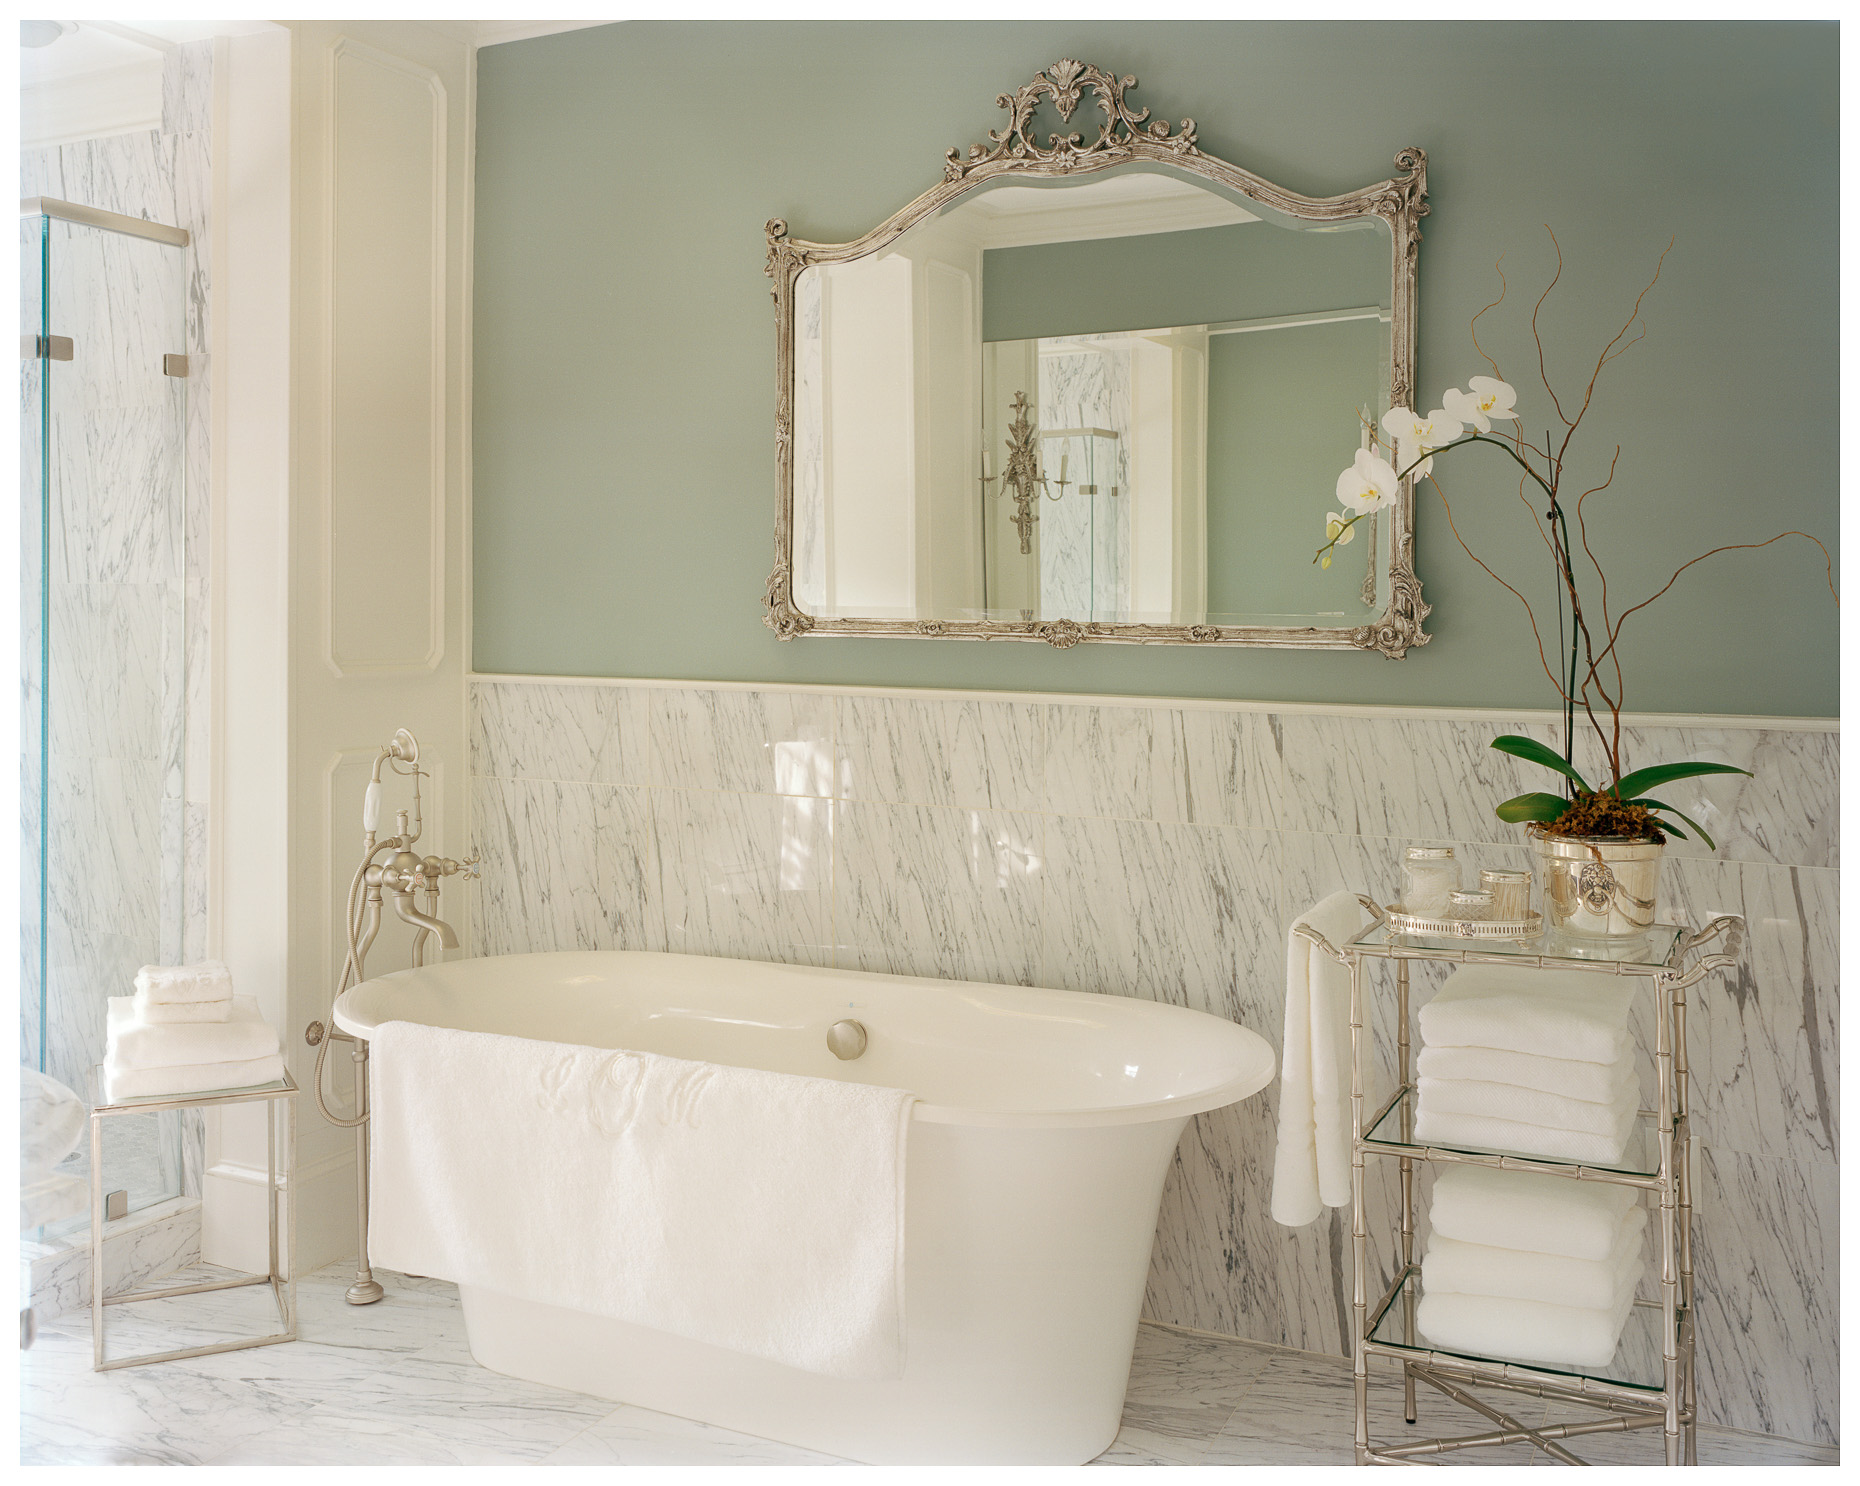 Charleston Interior | Bathroom | Brian Park Photo New York | 26